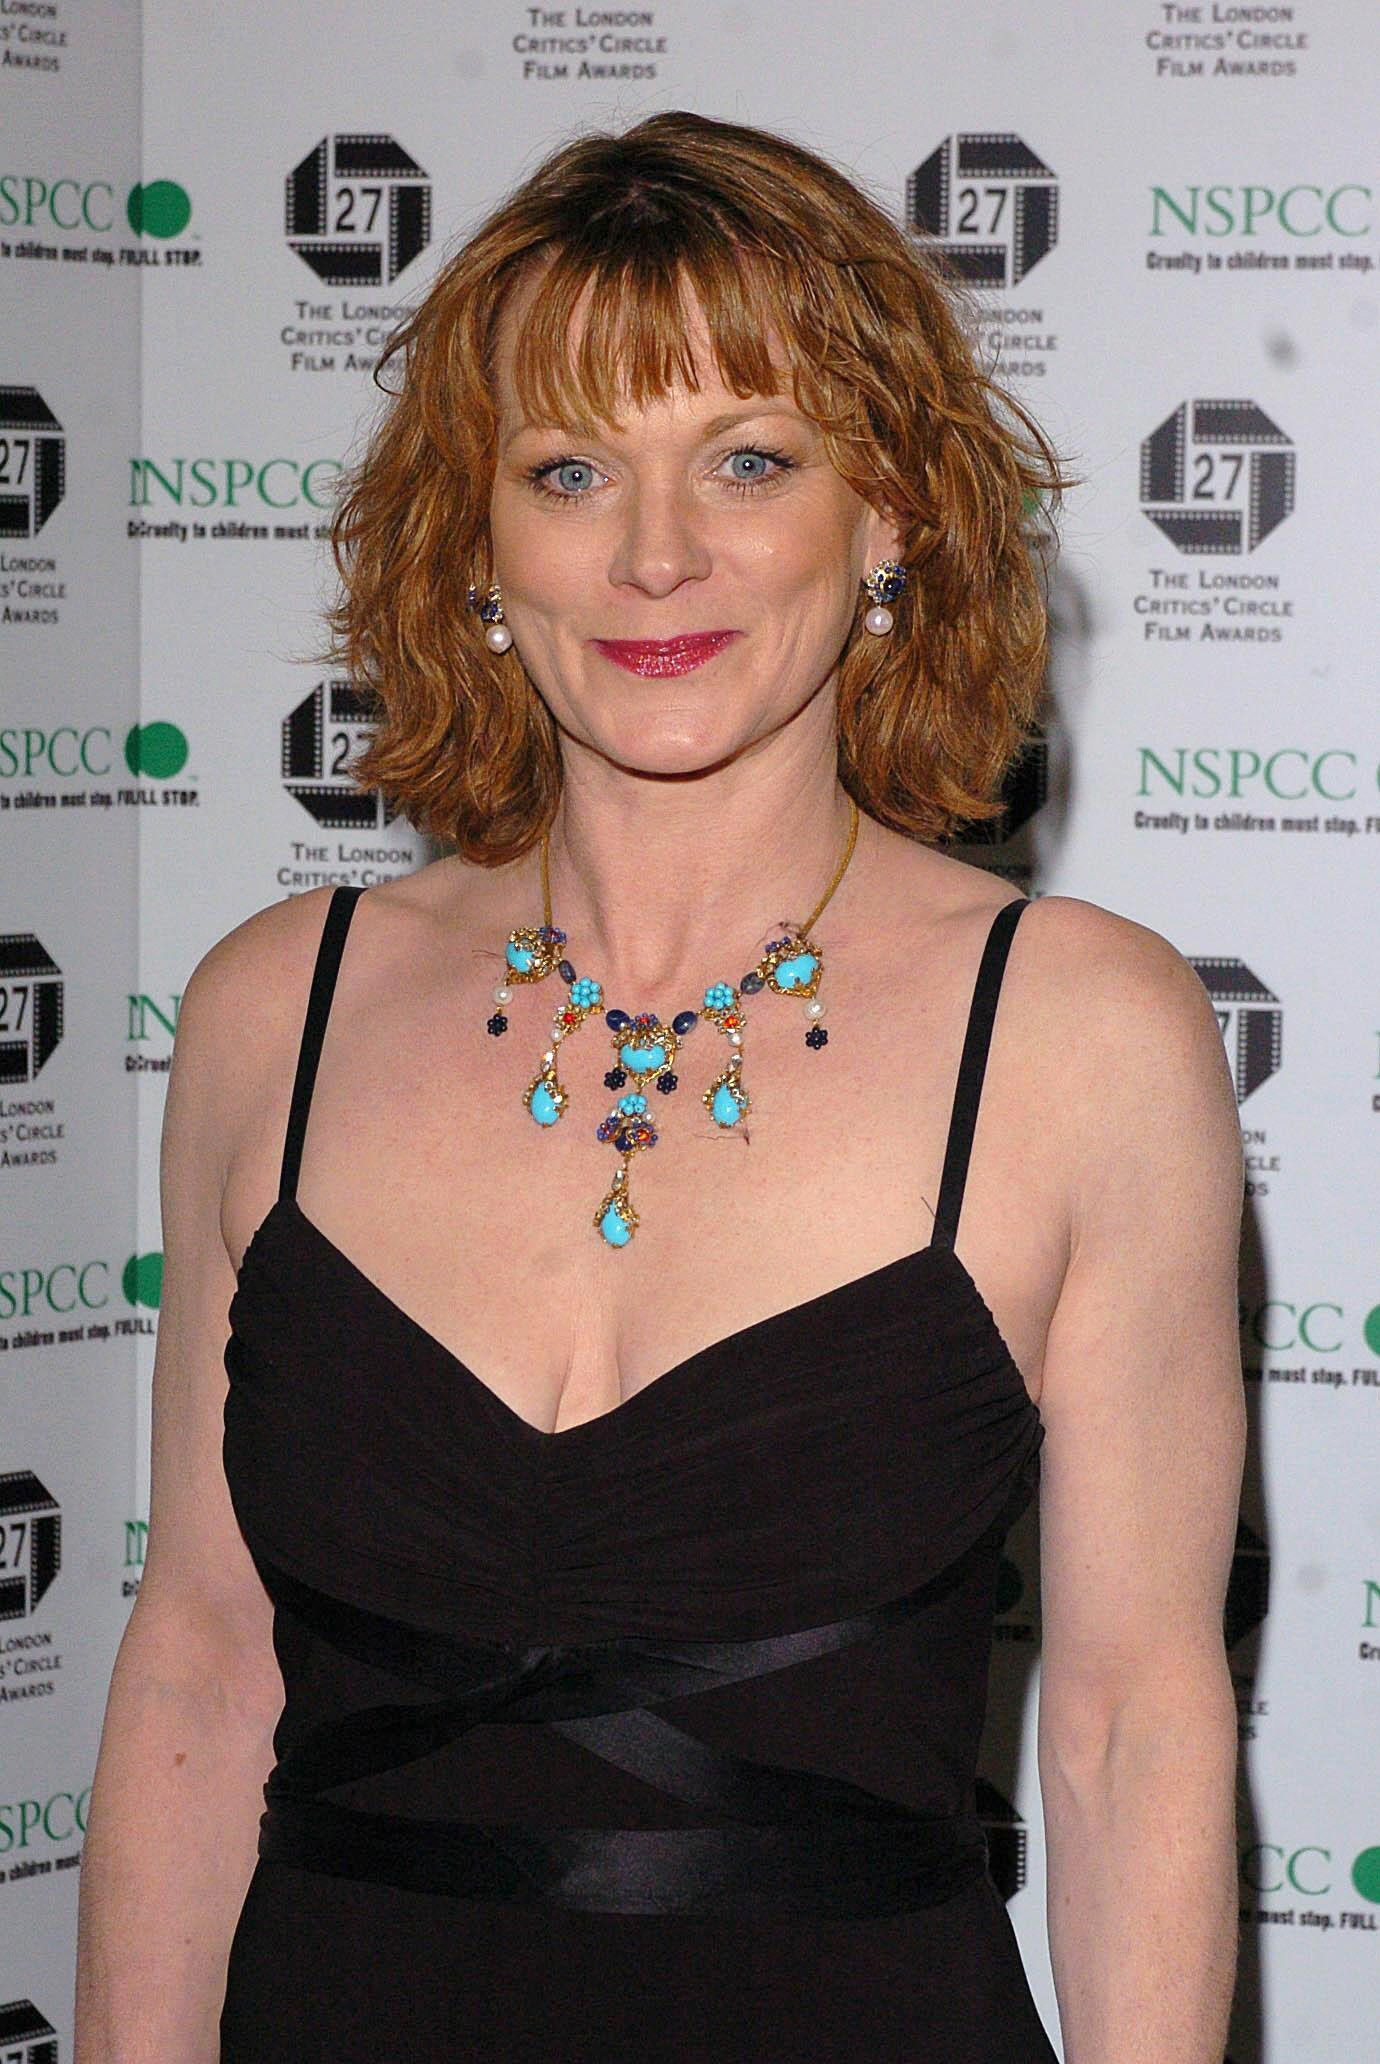 Samantha Bond nude (69 foto and video), Tits, Cleavage, Boobs, swimsuit 2019